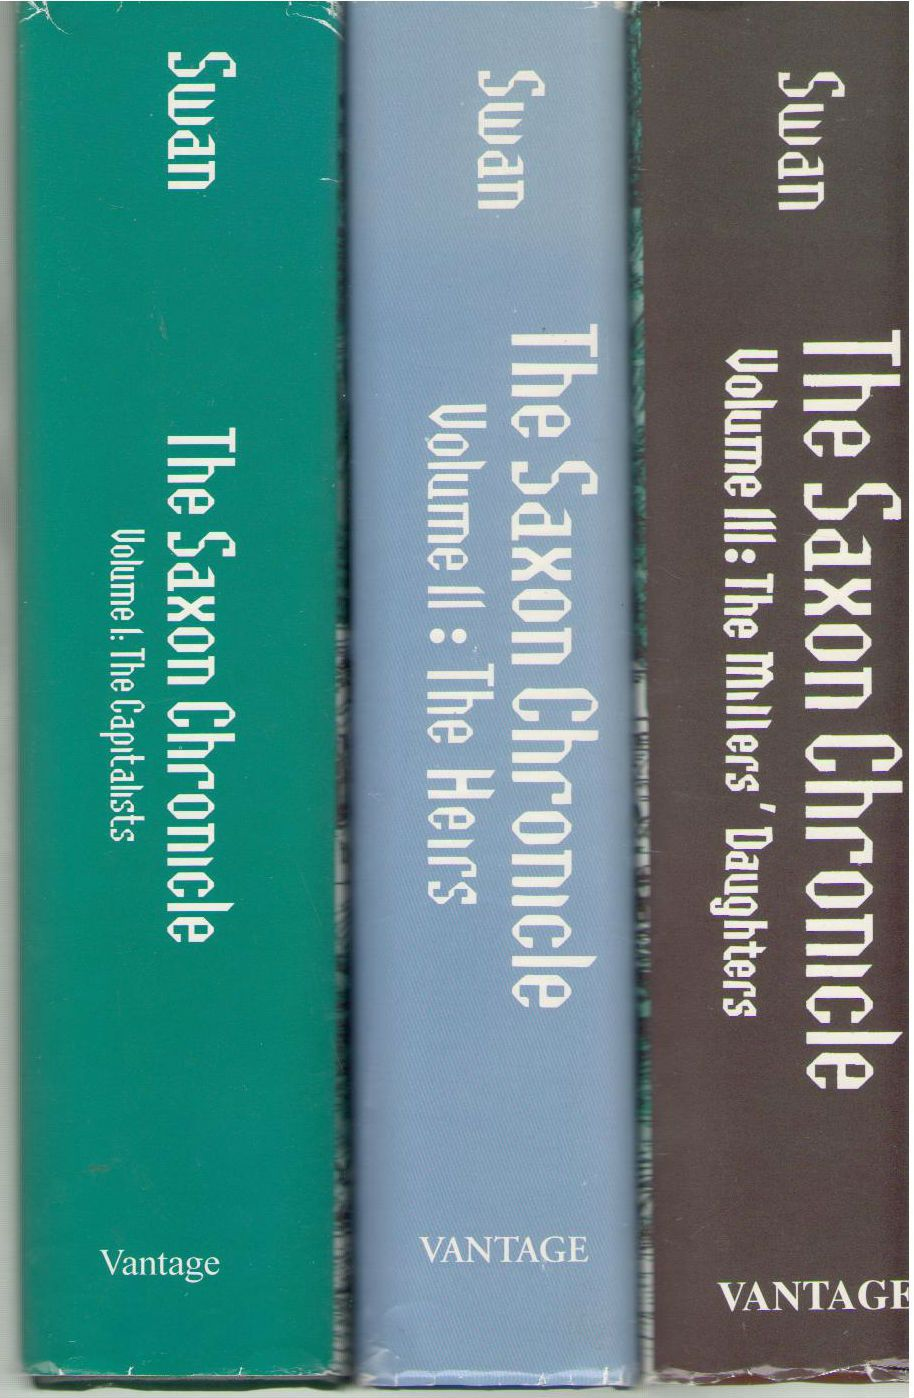 The Saxon Chronicle: Three Volume Set: The Capitalists. The Heirs. The Millers' Daughters